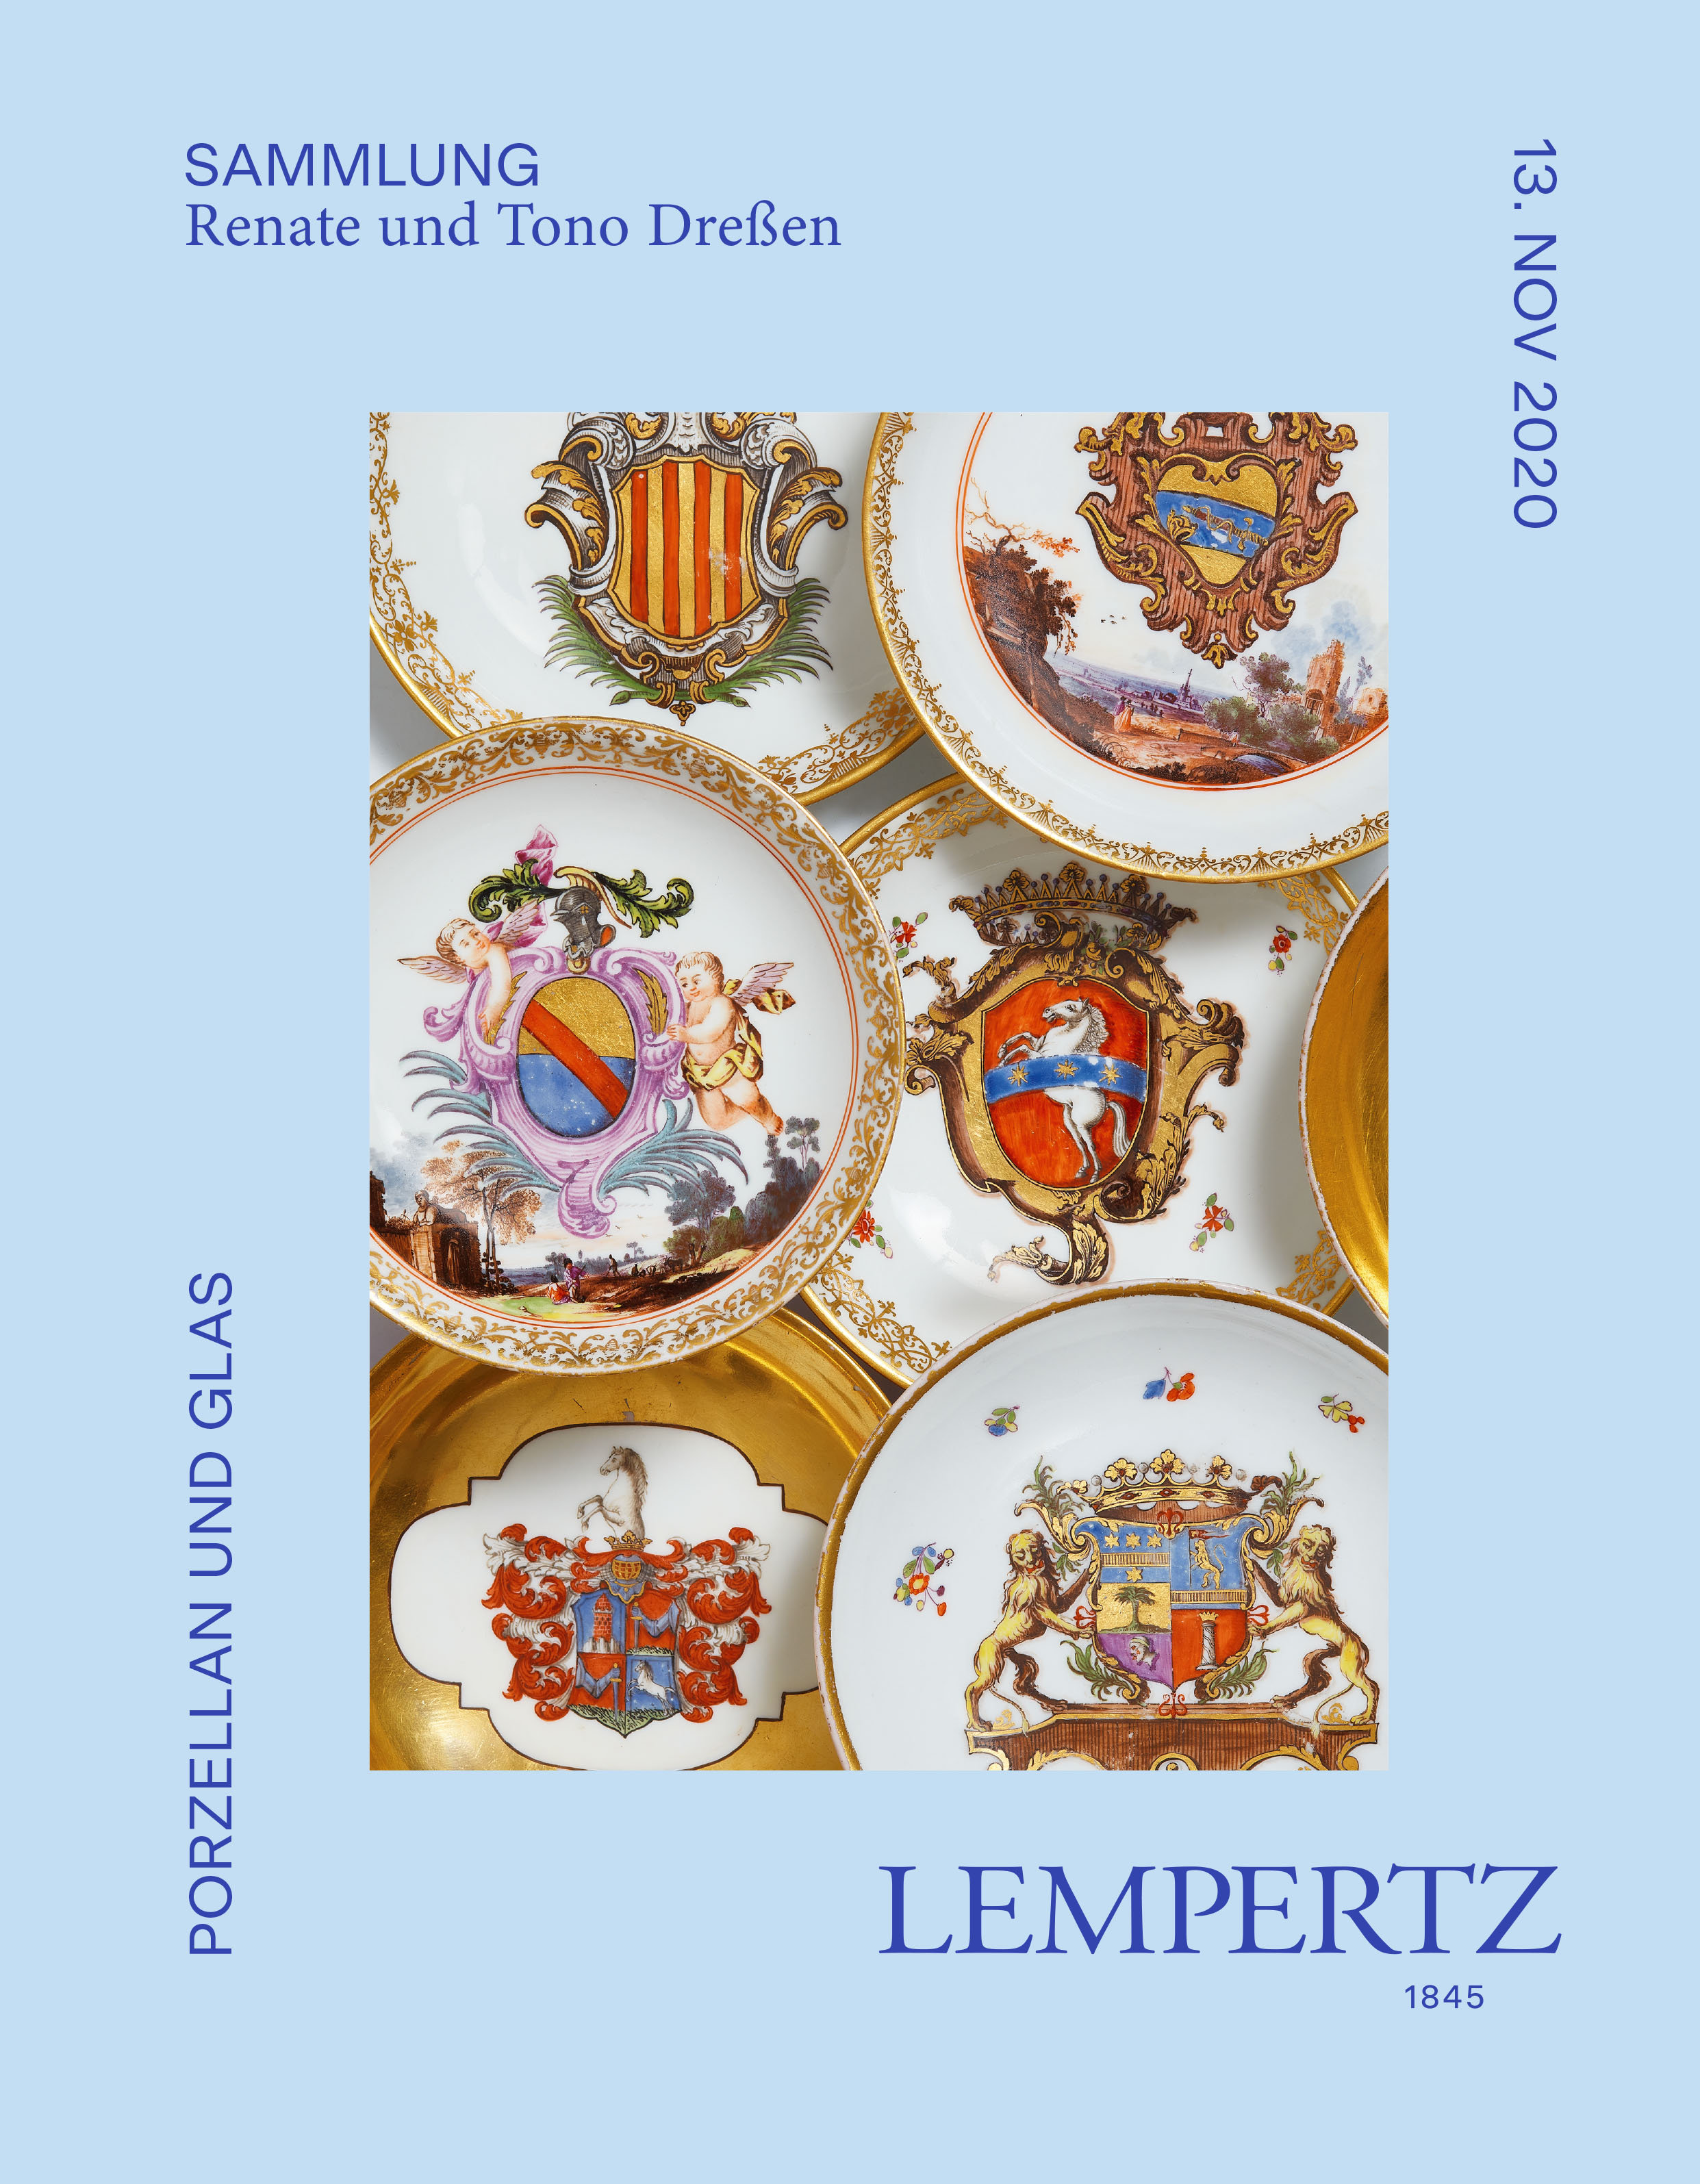 Catalogue - The Renate and Tono Dreßen Collection - Online Catalogue - Auction 1159 – Purchase valuable works of art at the next Lempertz-Auction!